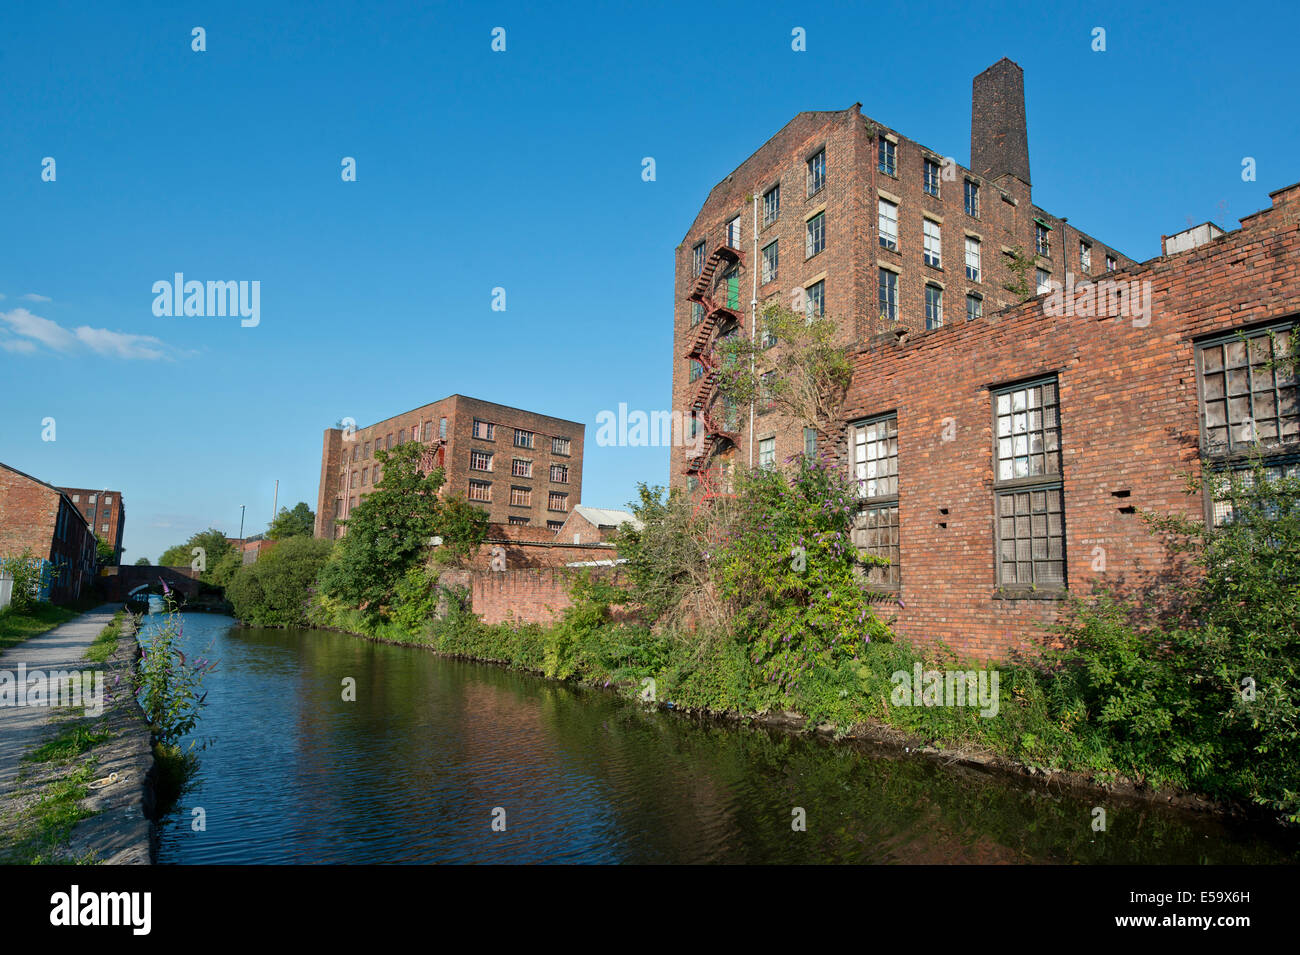 Two old warehouses by the side of the Ashton canal in Ancoats, Manchester, UK. - Stock Image